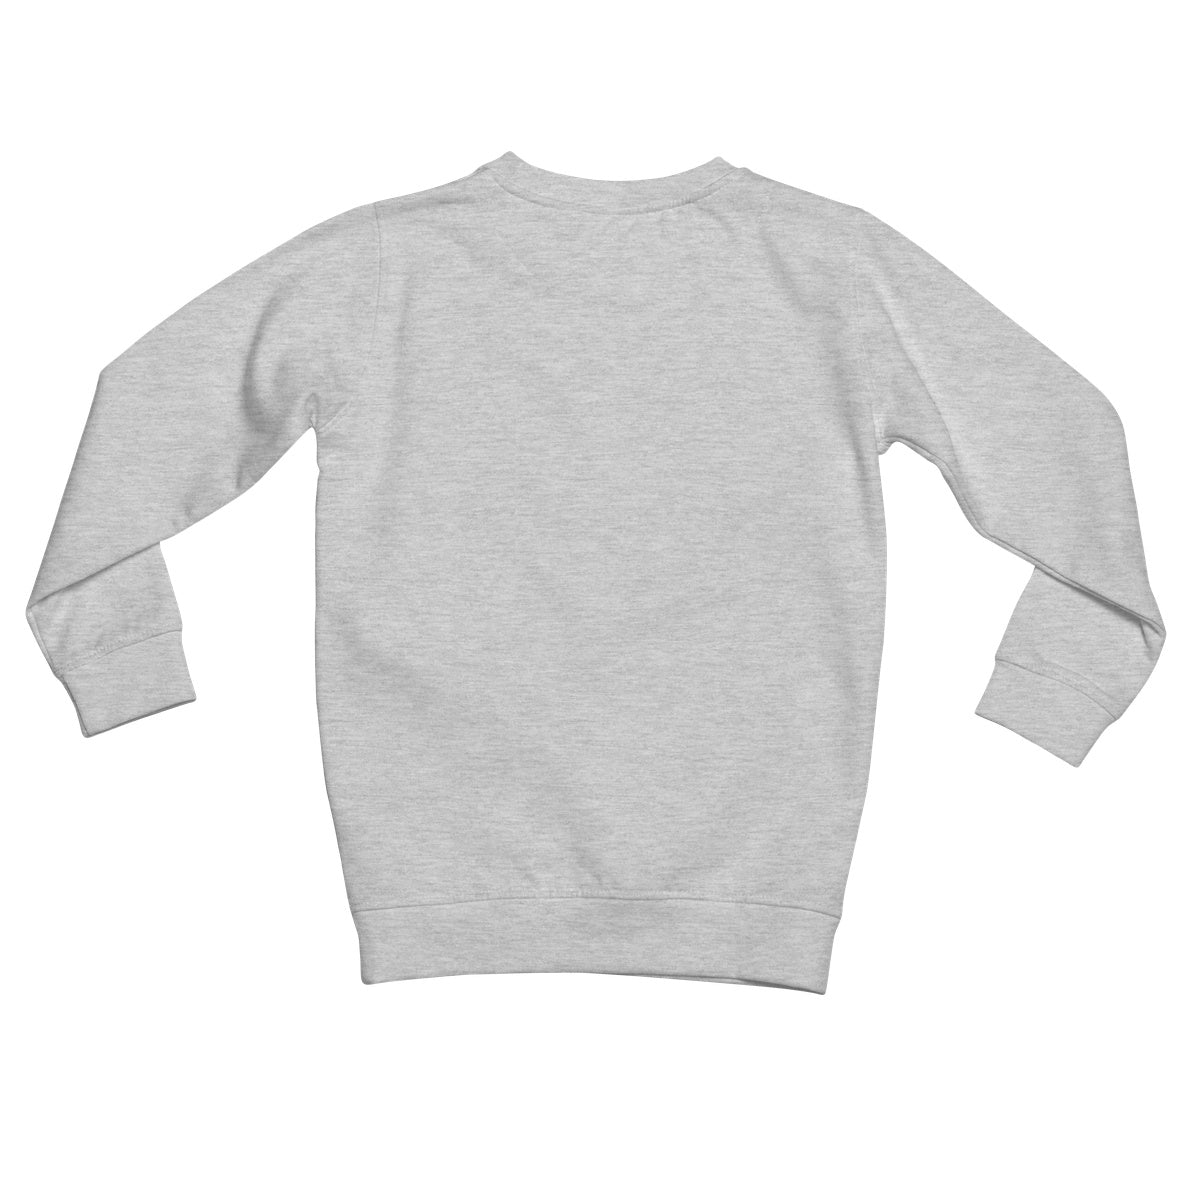 Wind Yer Neck In (Black) Ambigram Kids Retail Sweatshirt